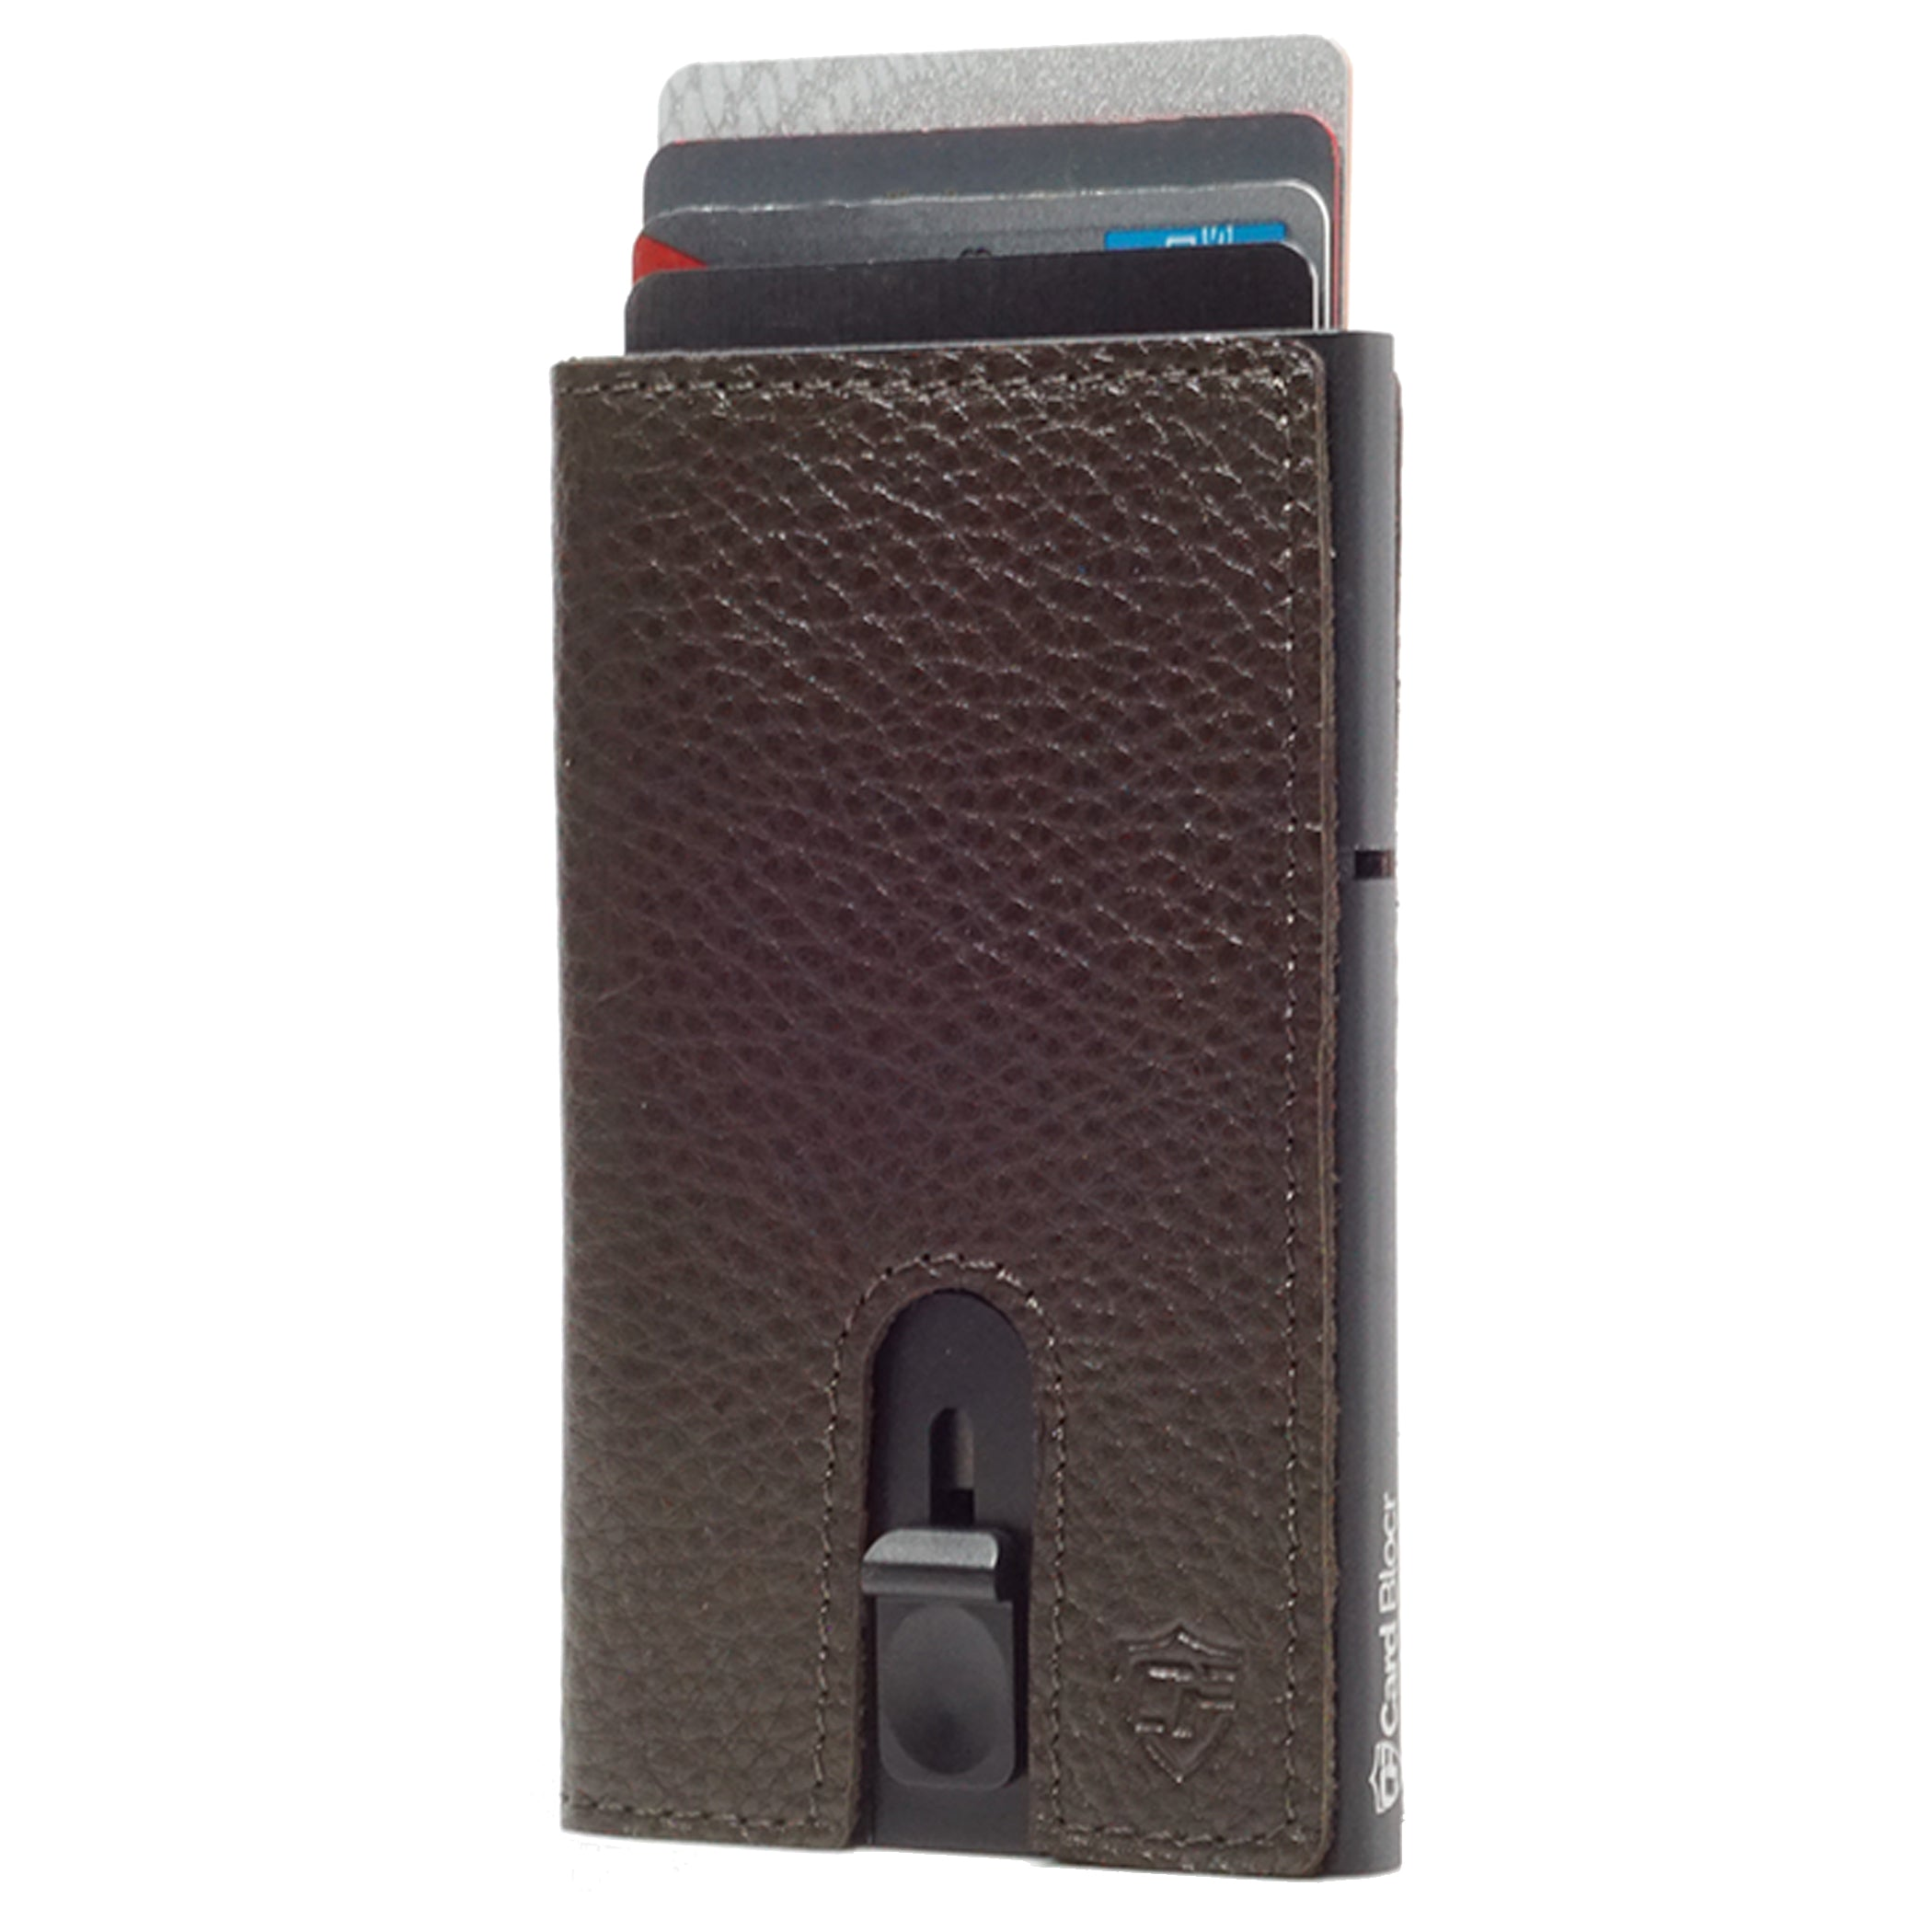 Card Blocr Credit Card Holder in Black Wrapped in Dark Chocolate Brown Leather | RFID Wallet Cards Up